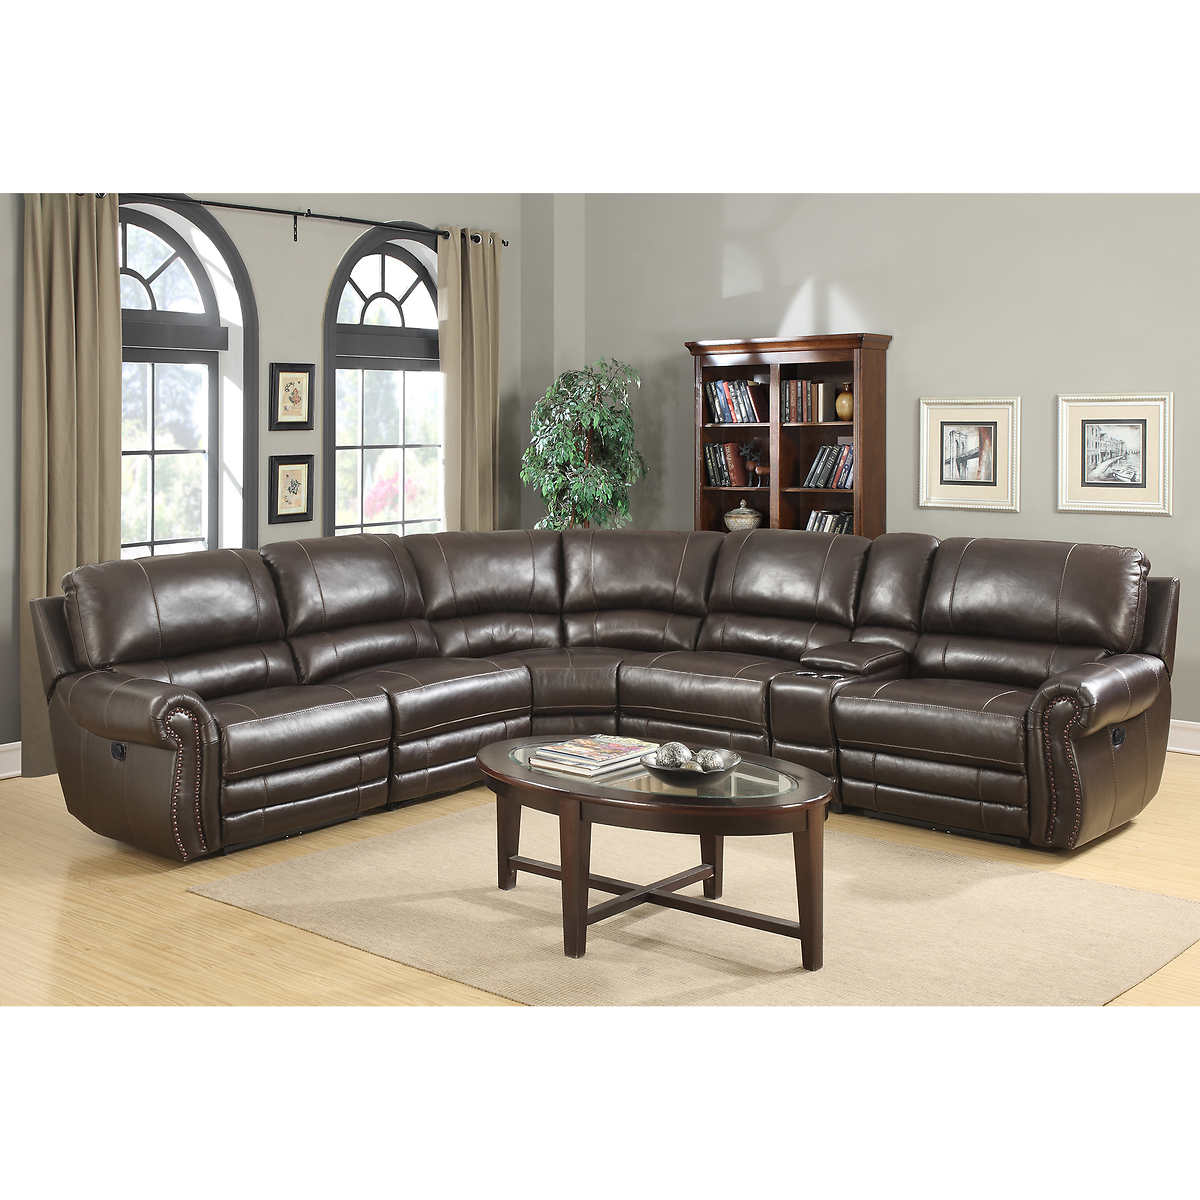 Modular Living Room Furniture Leather Sofas Sectionals Costco